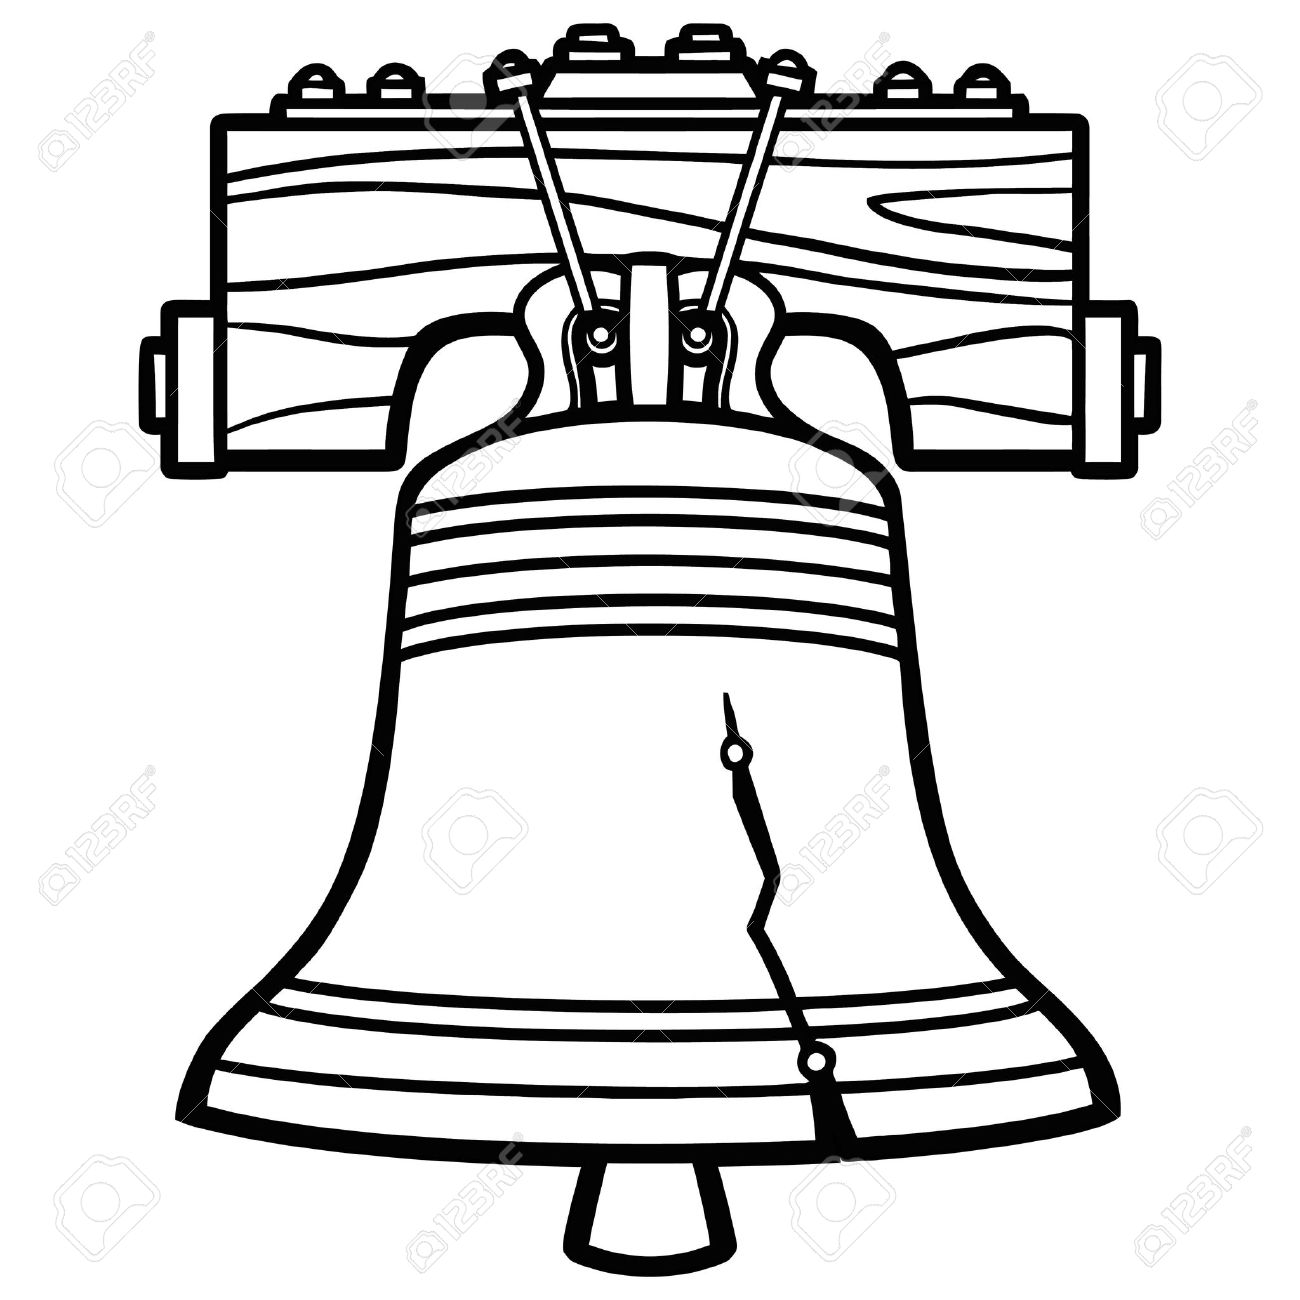 Liberty bell drawing at. Bells clipart sketches